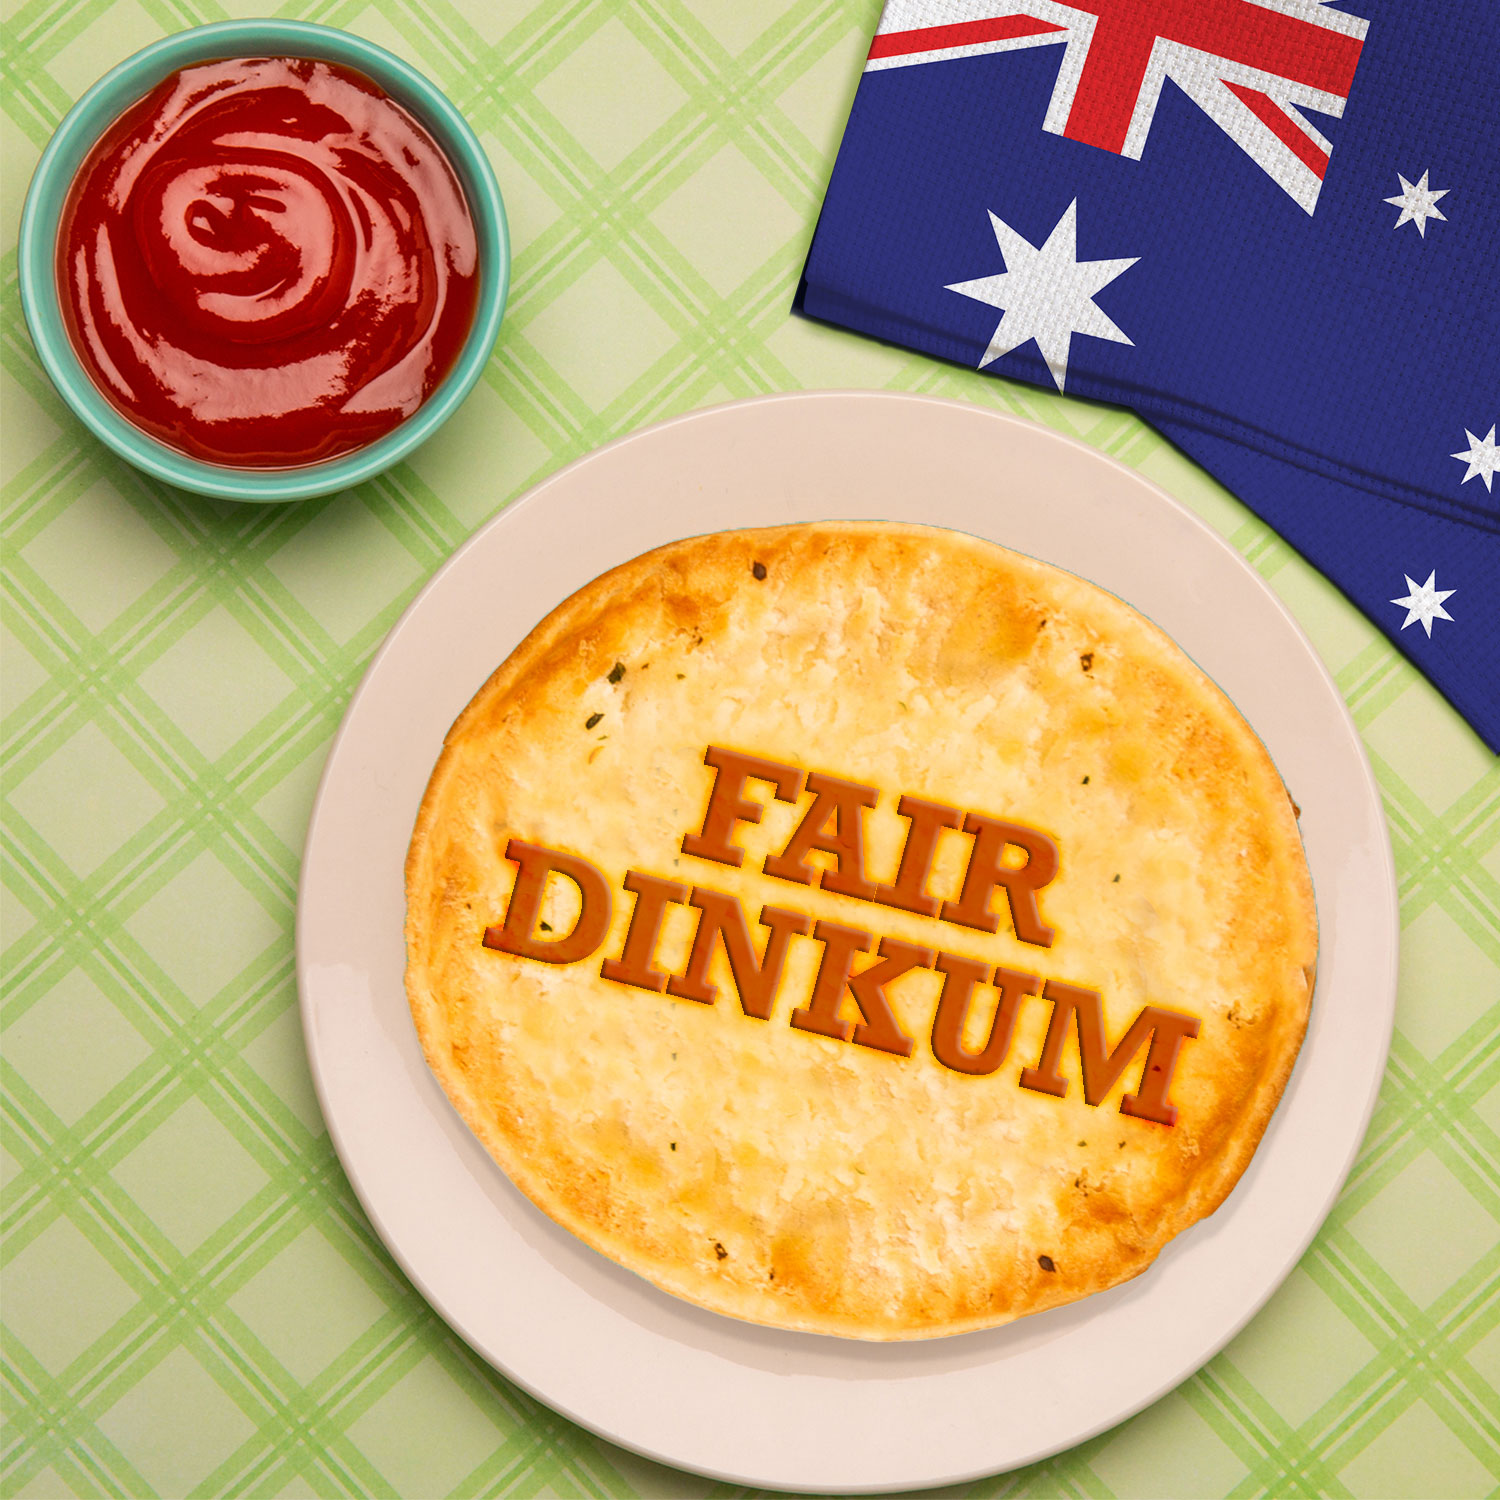 Fair Dinkum: Real, True, Genuine